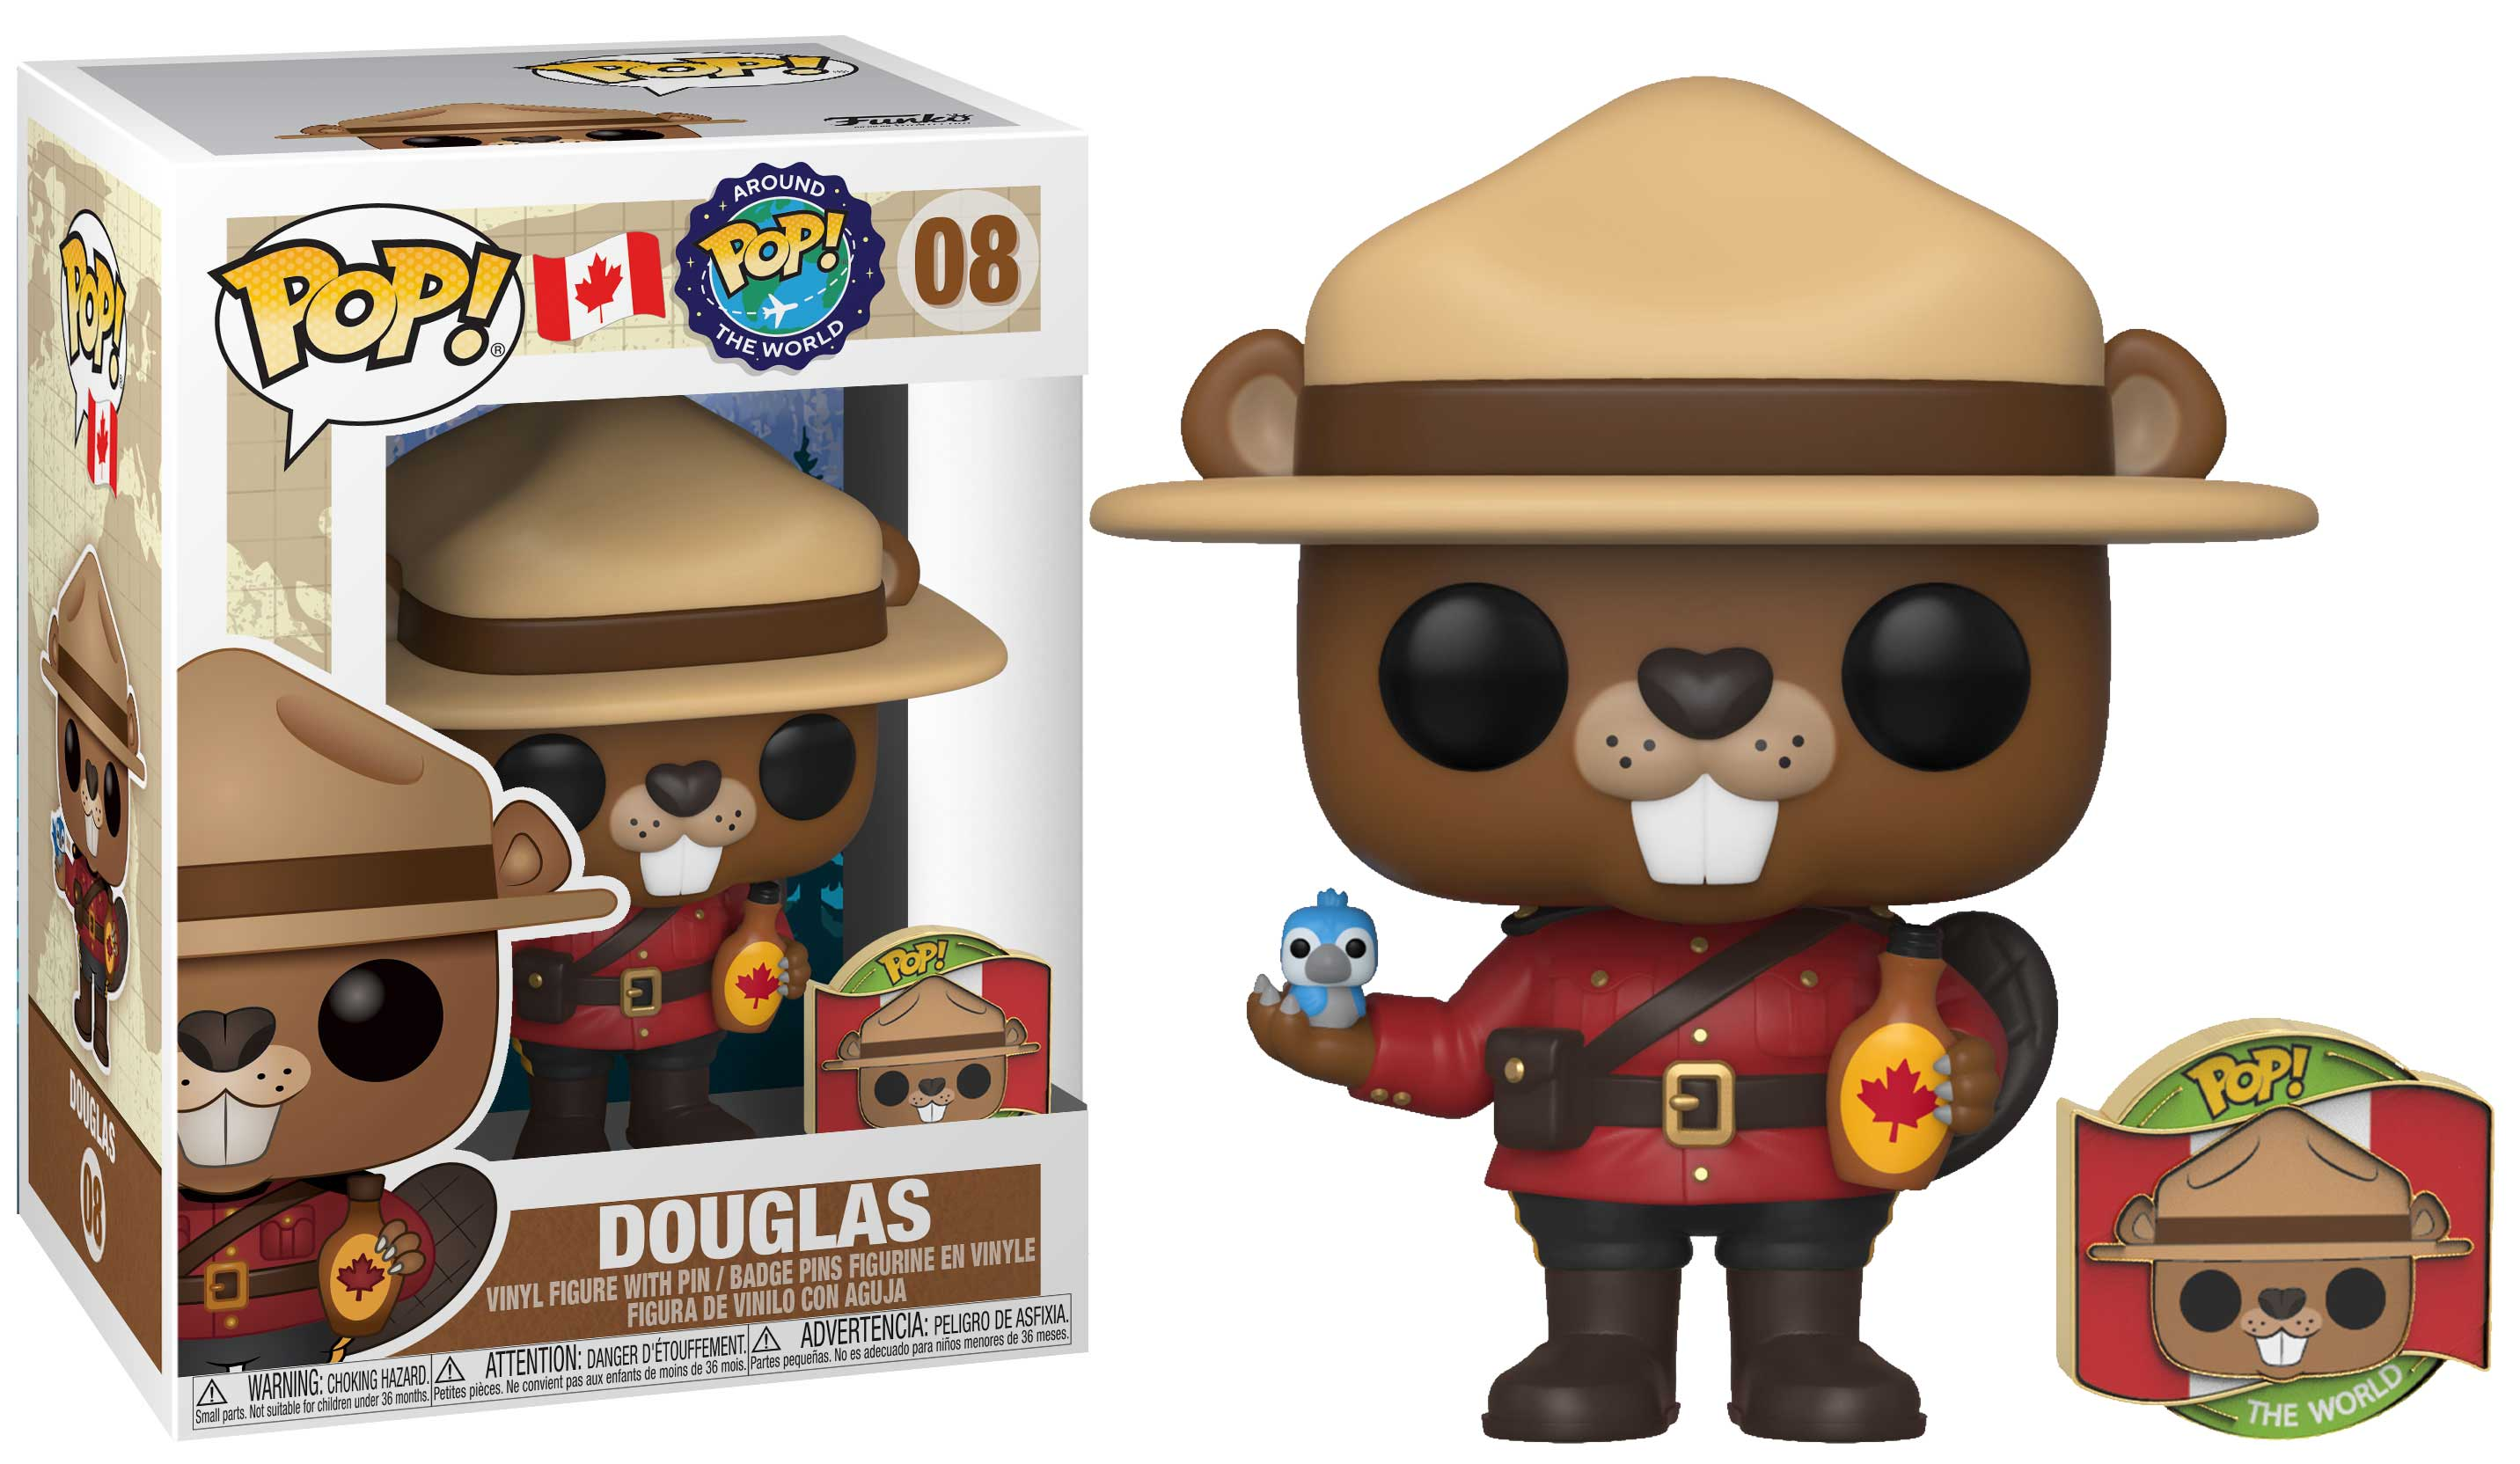 Pop! Around the World Vinyl Figure Douglas with Pin #08 Canada Exclusive